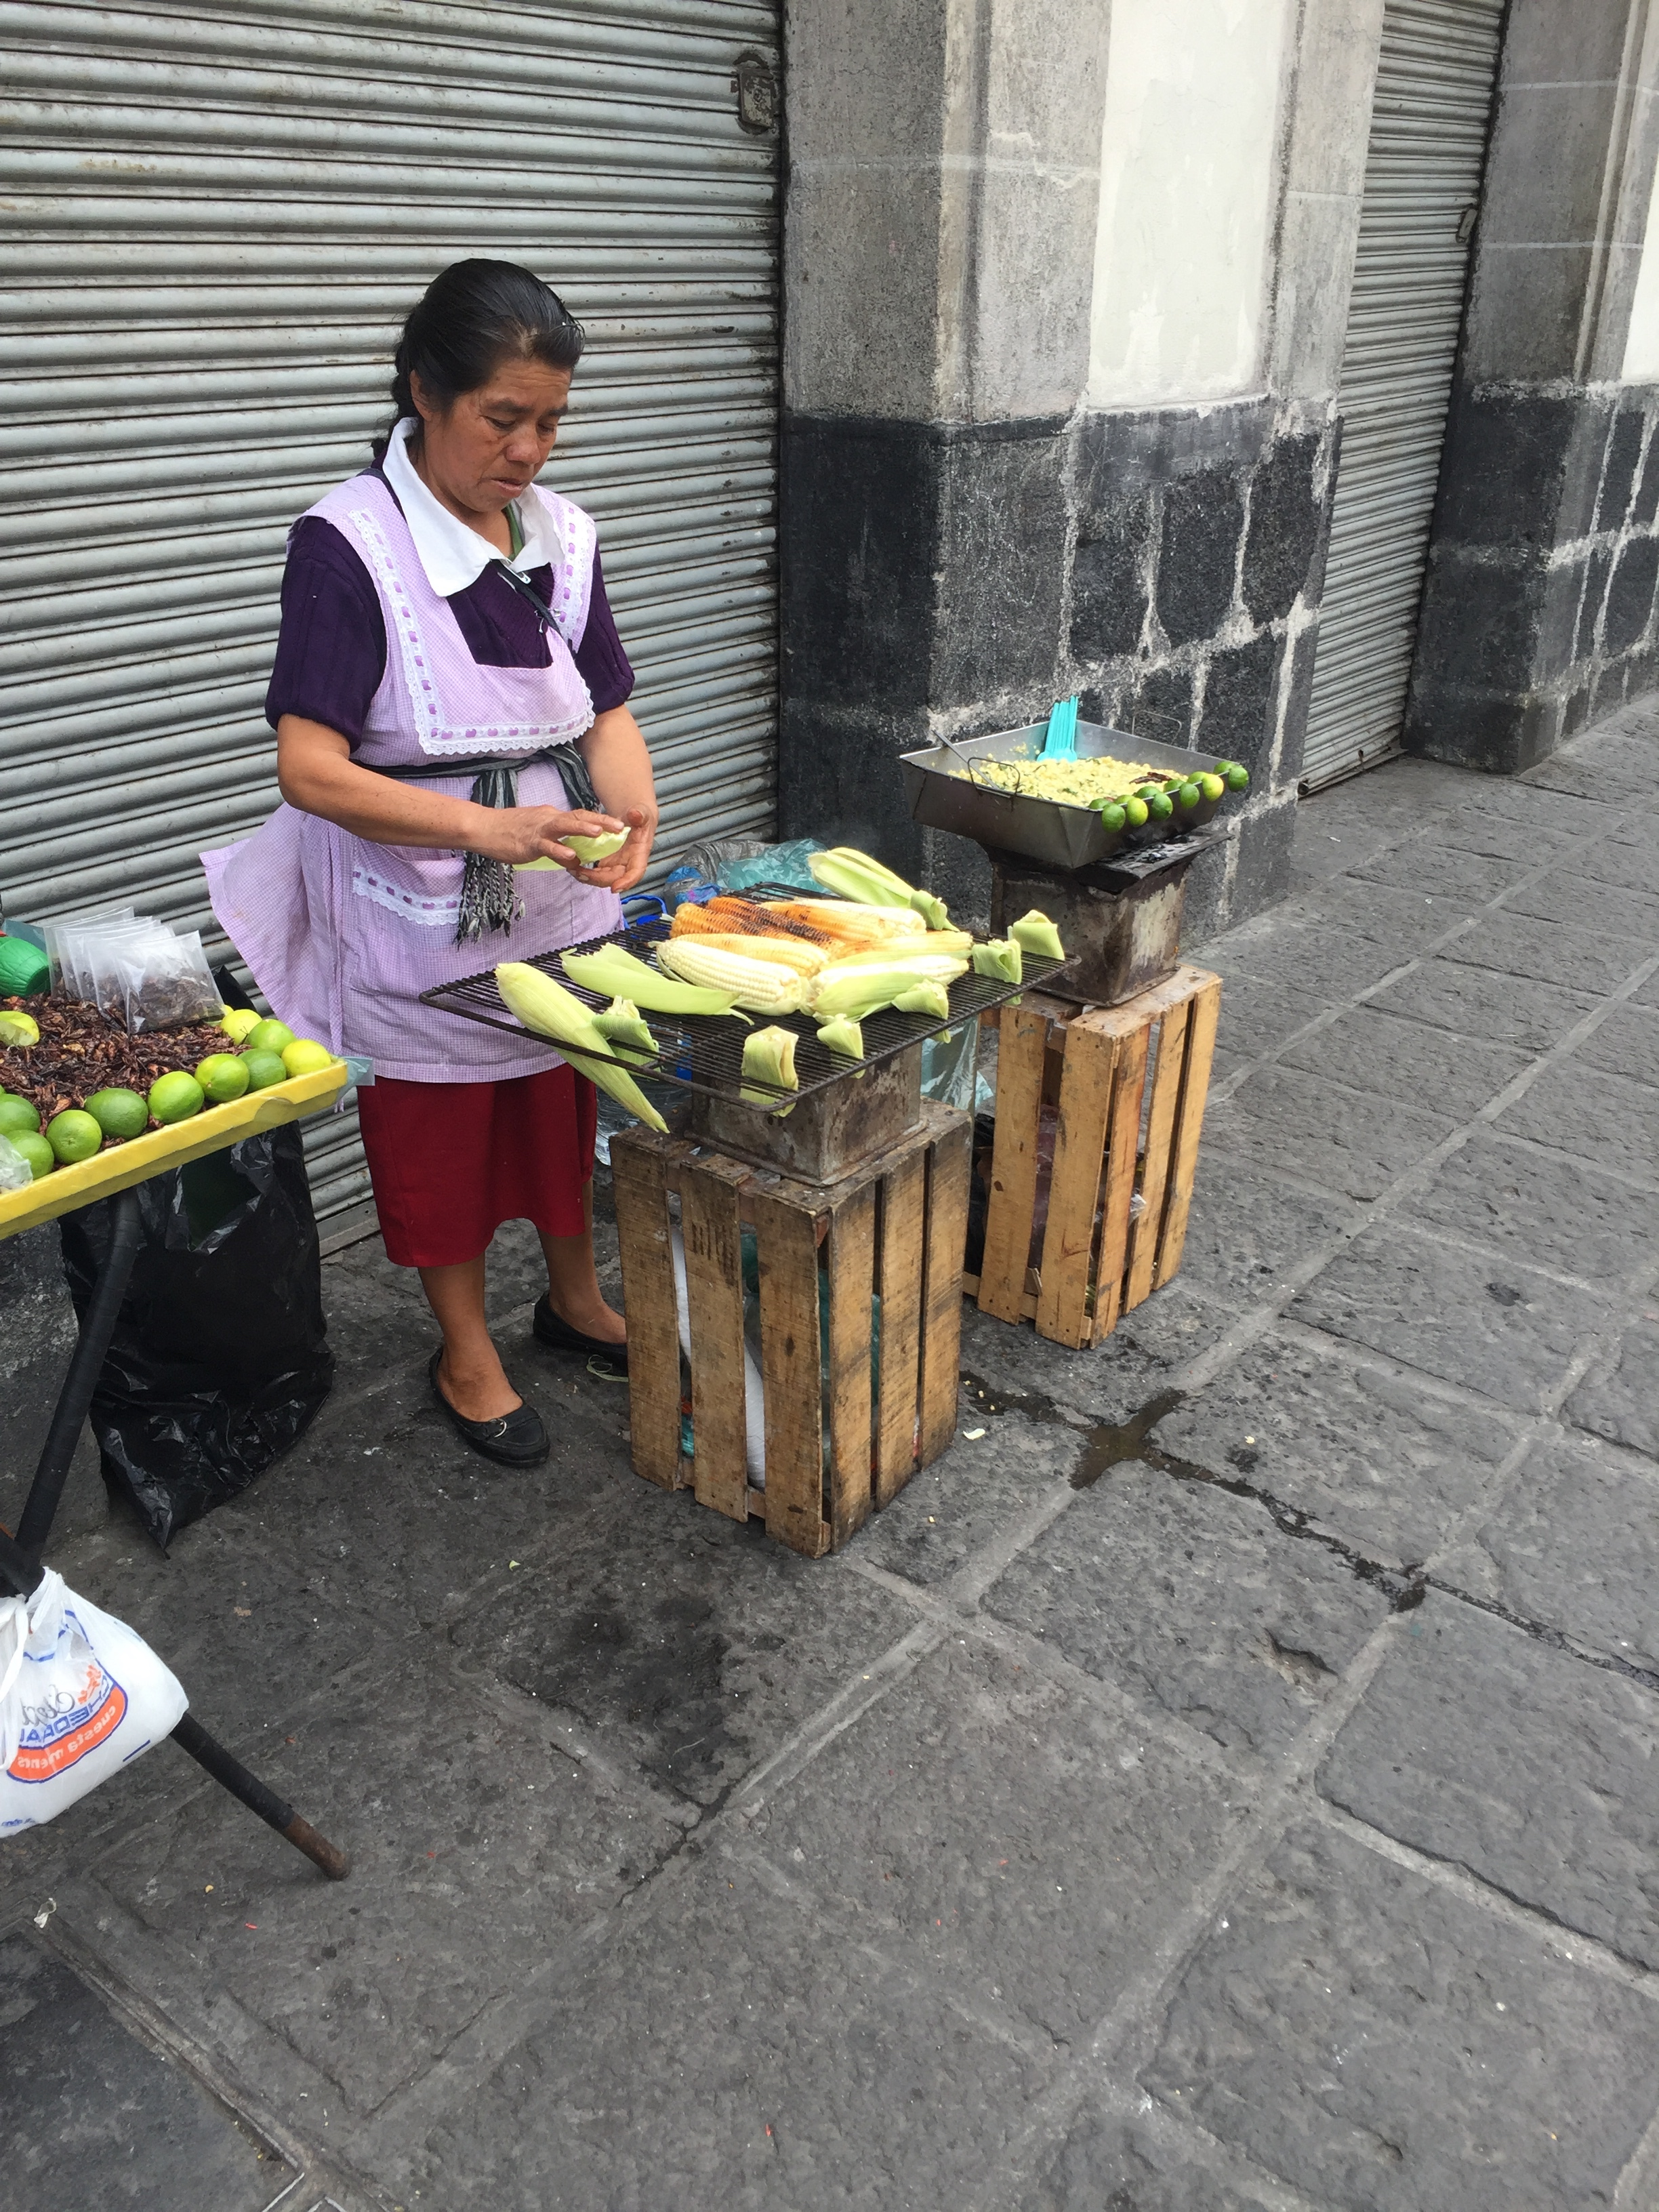 A woman prepares corn on a street in Mexico City.